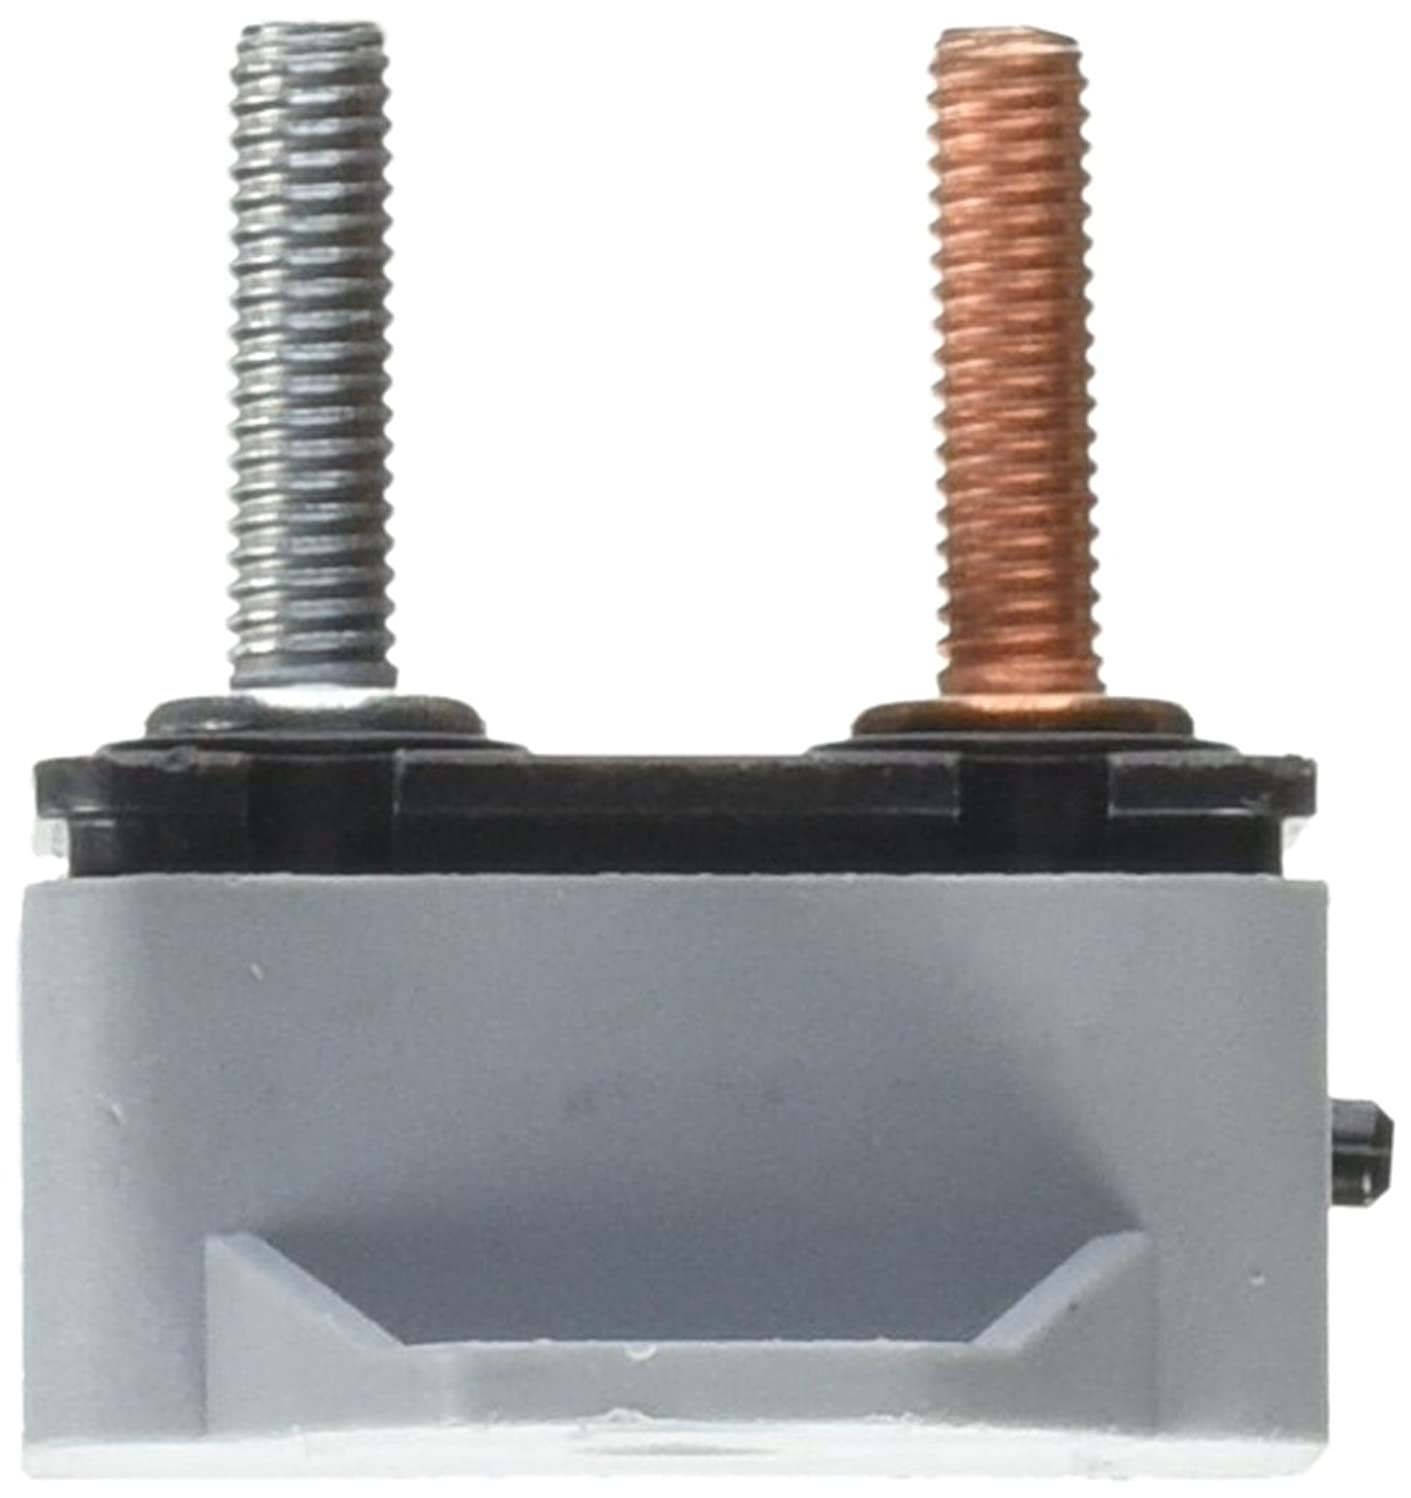 Sea Dog 420844-1 Resettable Circuit Breaker without Cover, 40 Amp